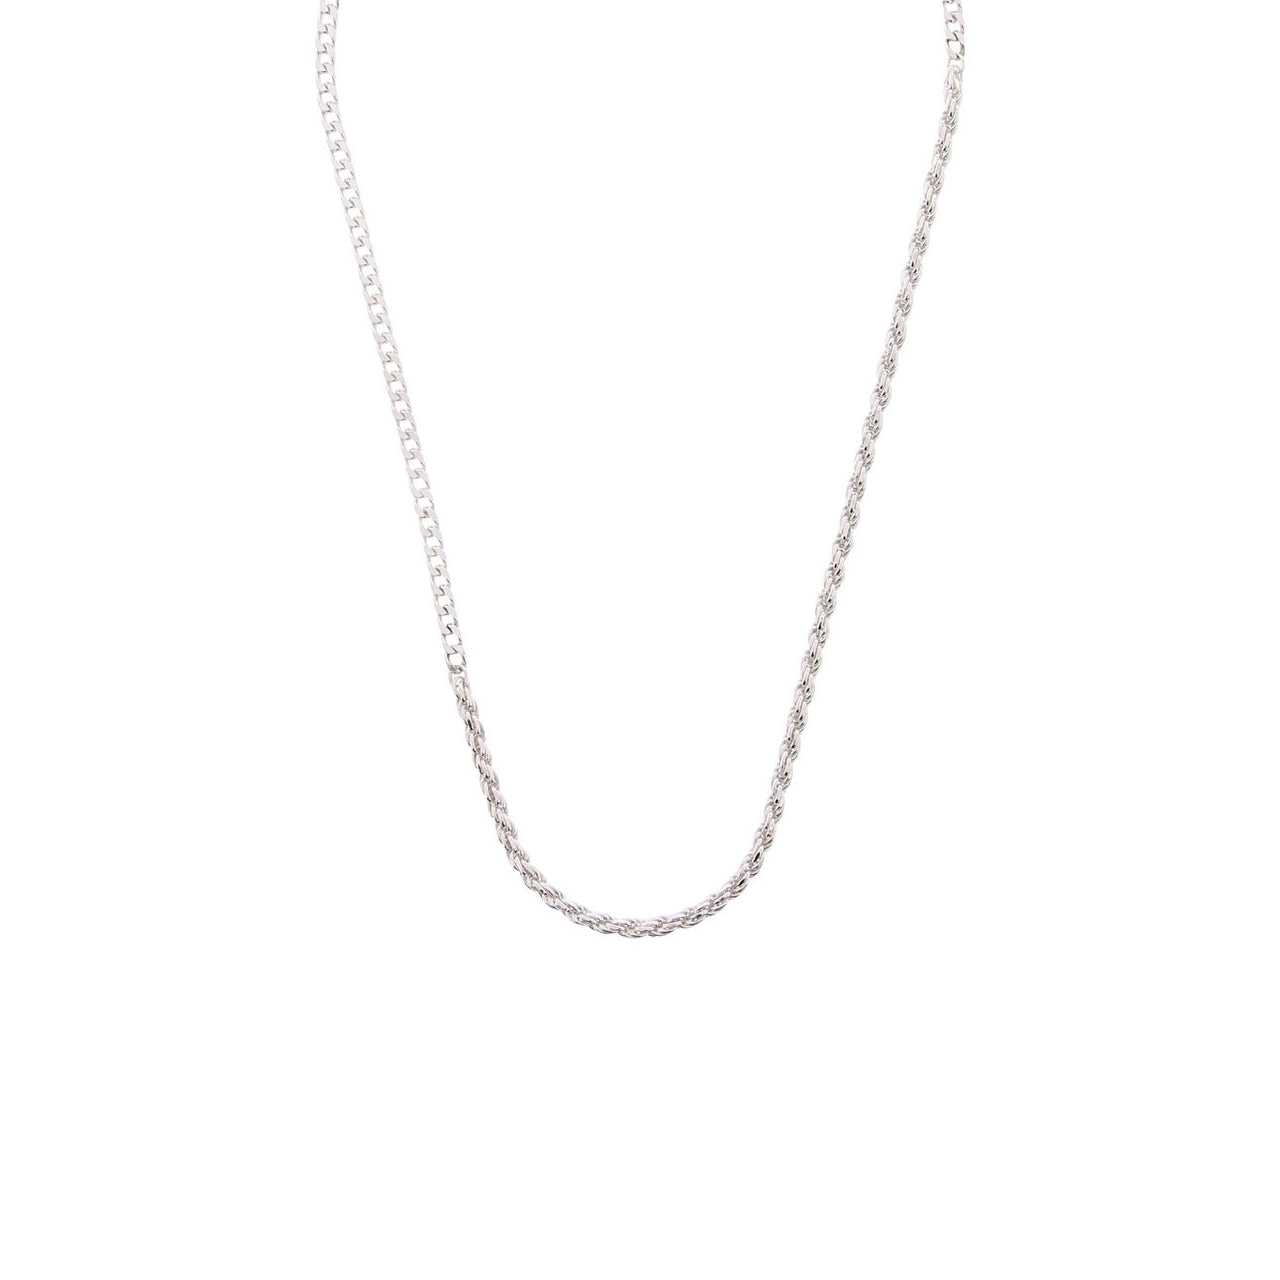 arte silver gourmet chain necklace